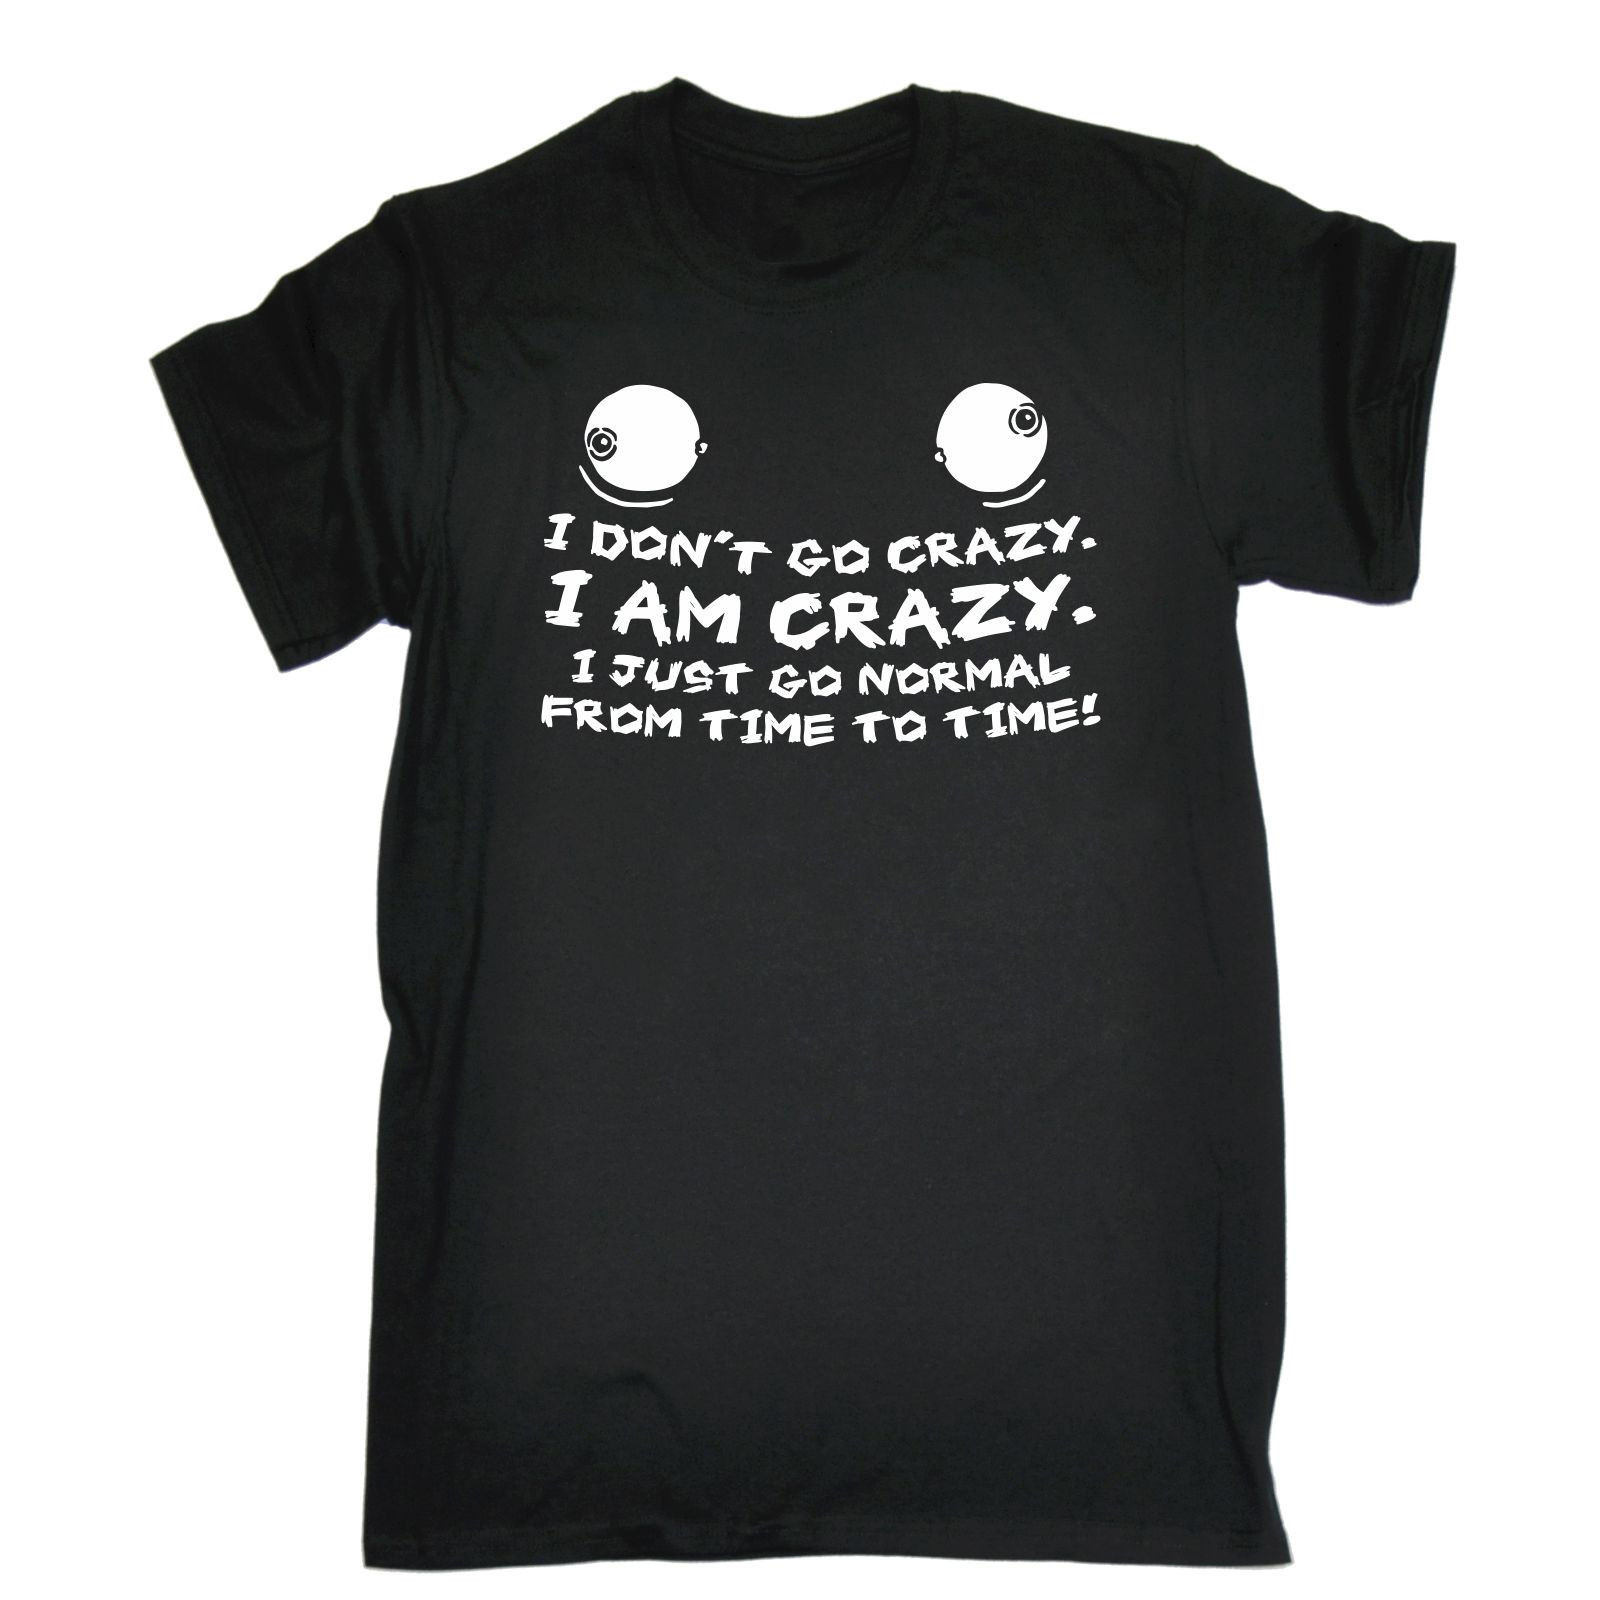 Not Crazy Normal Time To Time T-SHIRT Tee Cool Top Present Gift Fathers Day T Shirt Men Tees Brand Clothing Funny